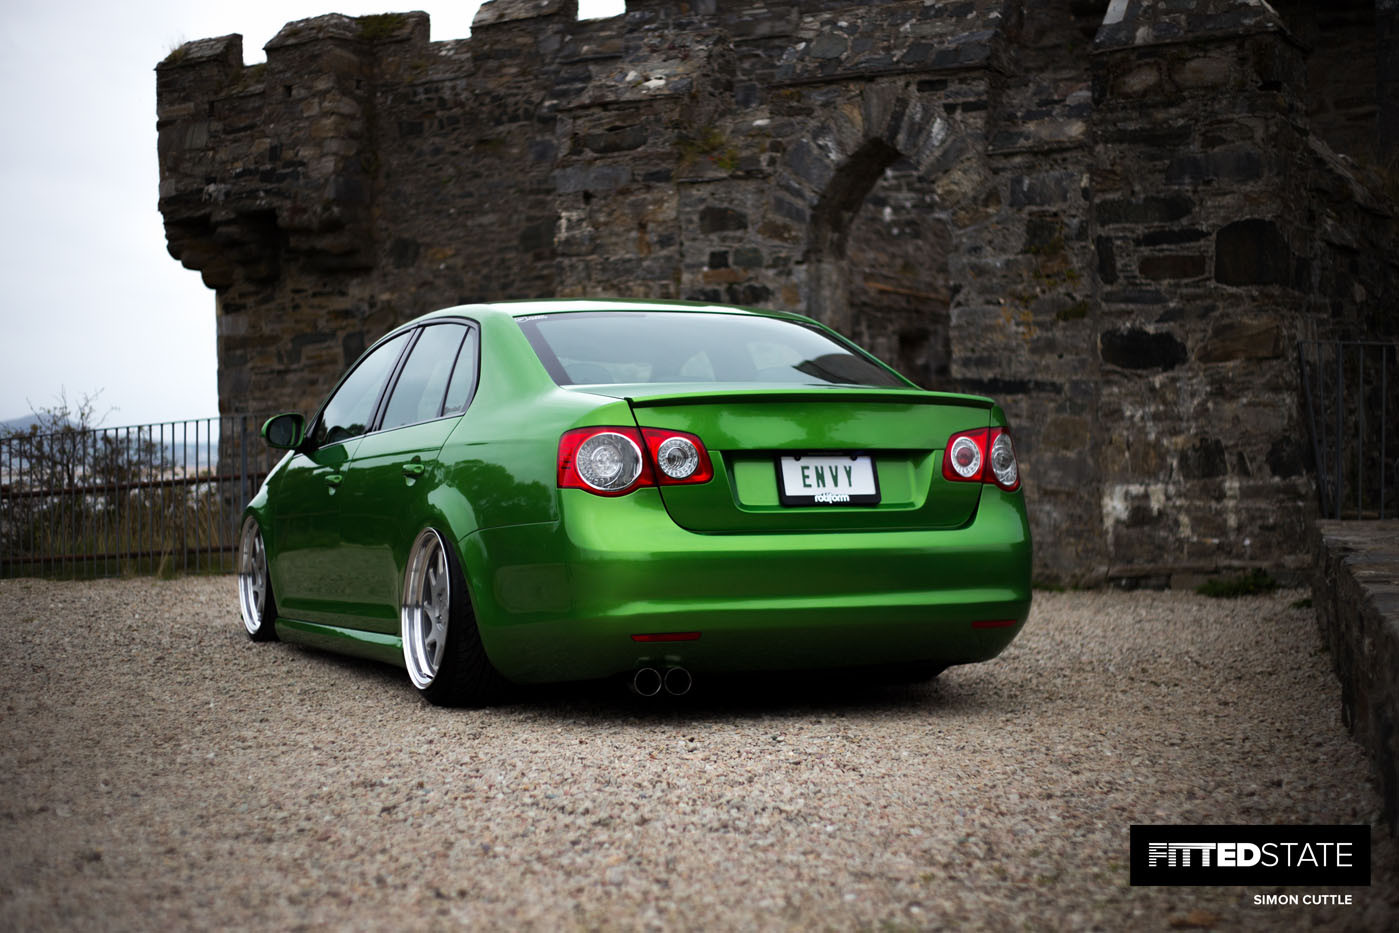 Niall Gerety's Volkswagen Jetta - Fitted State